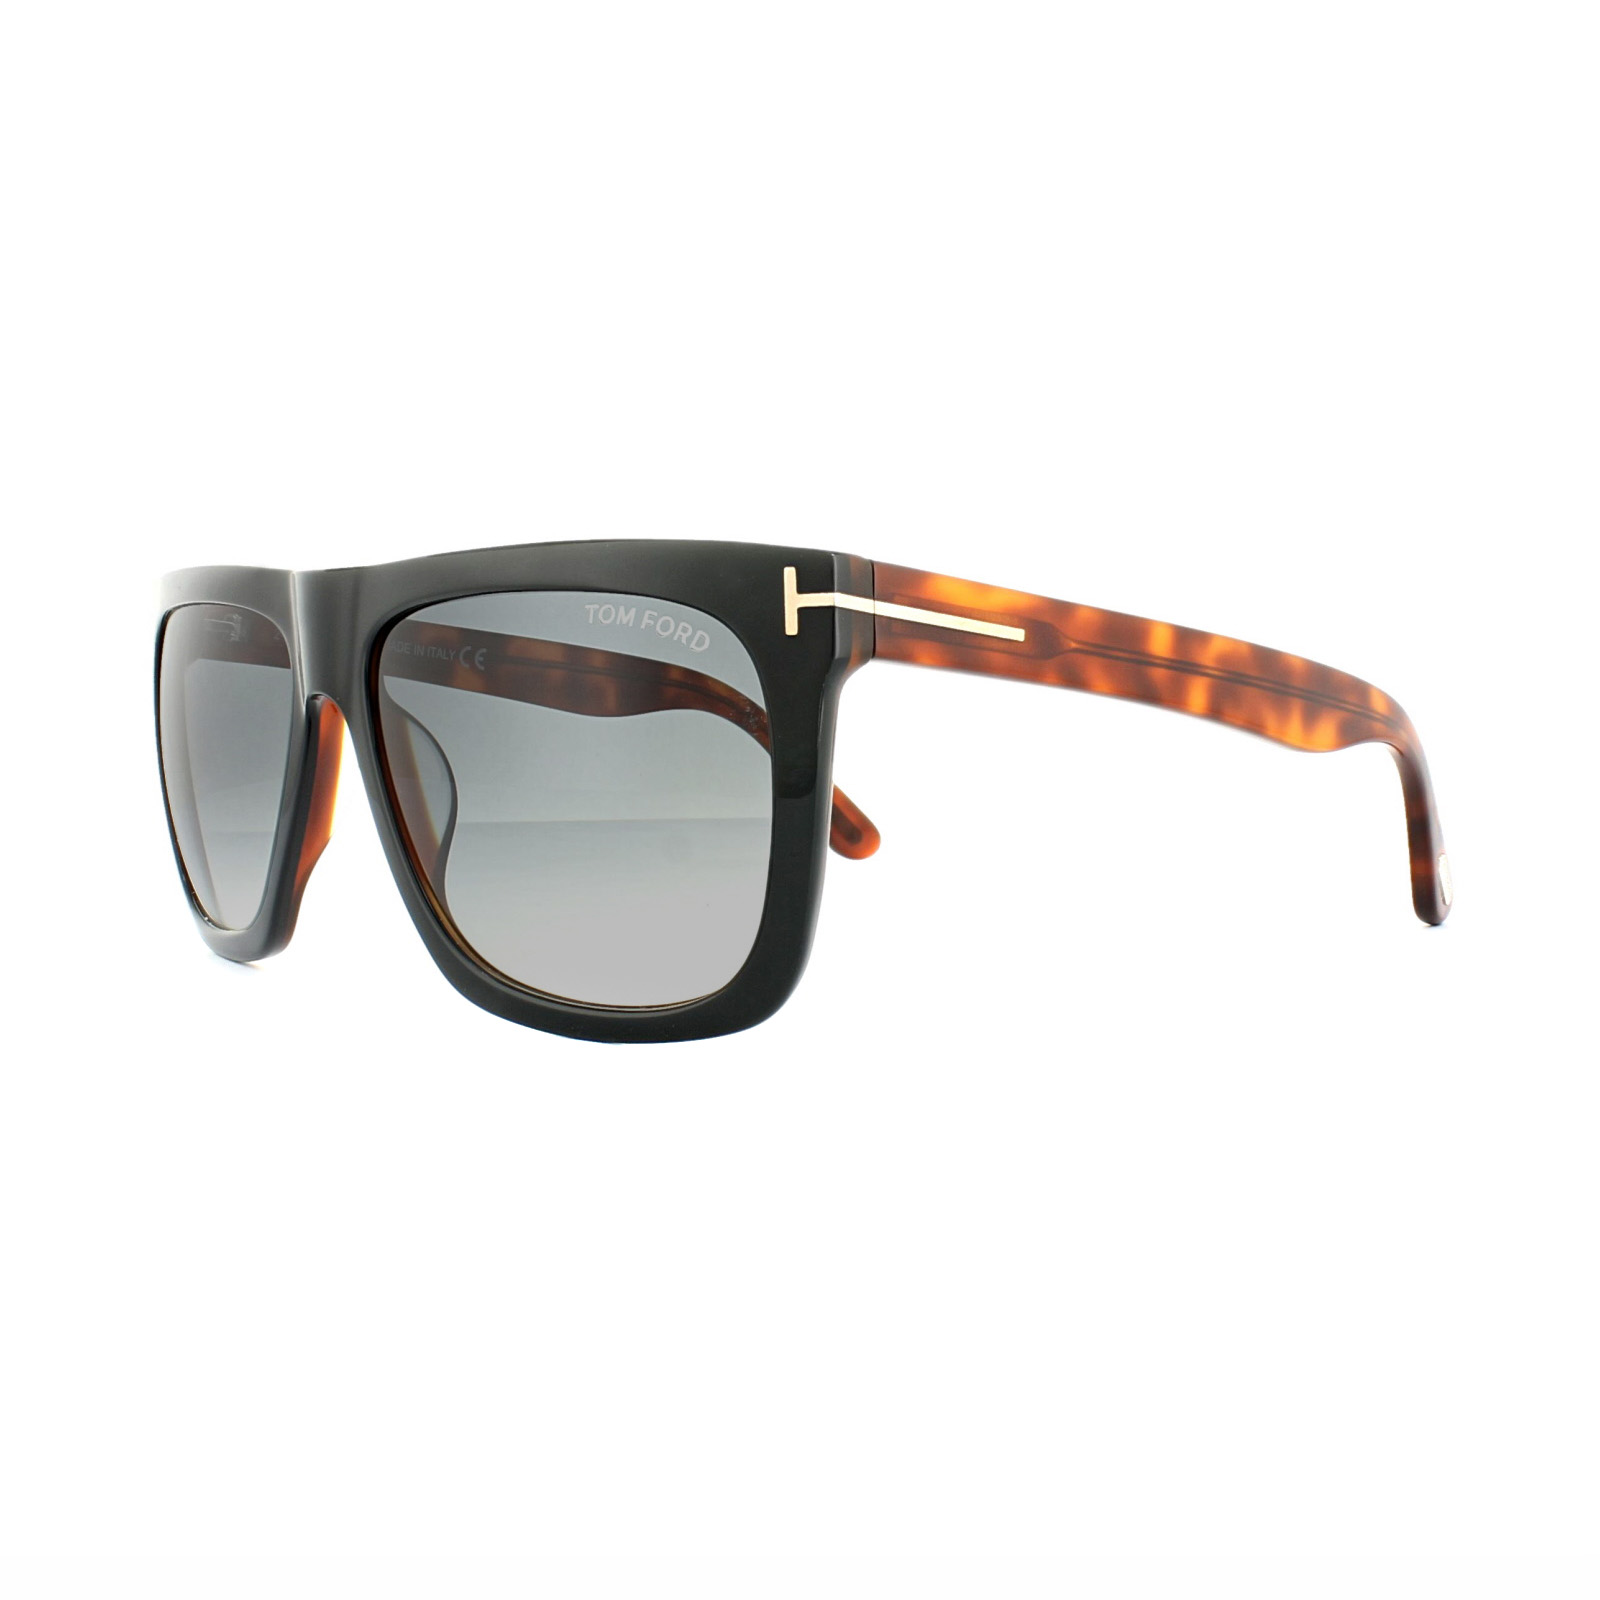 Tom Ford FT0513 05B 57 mm/16 mm ifOs3b